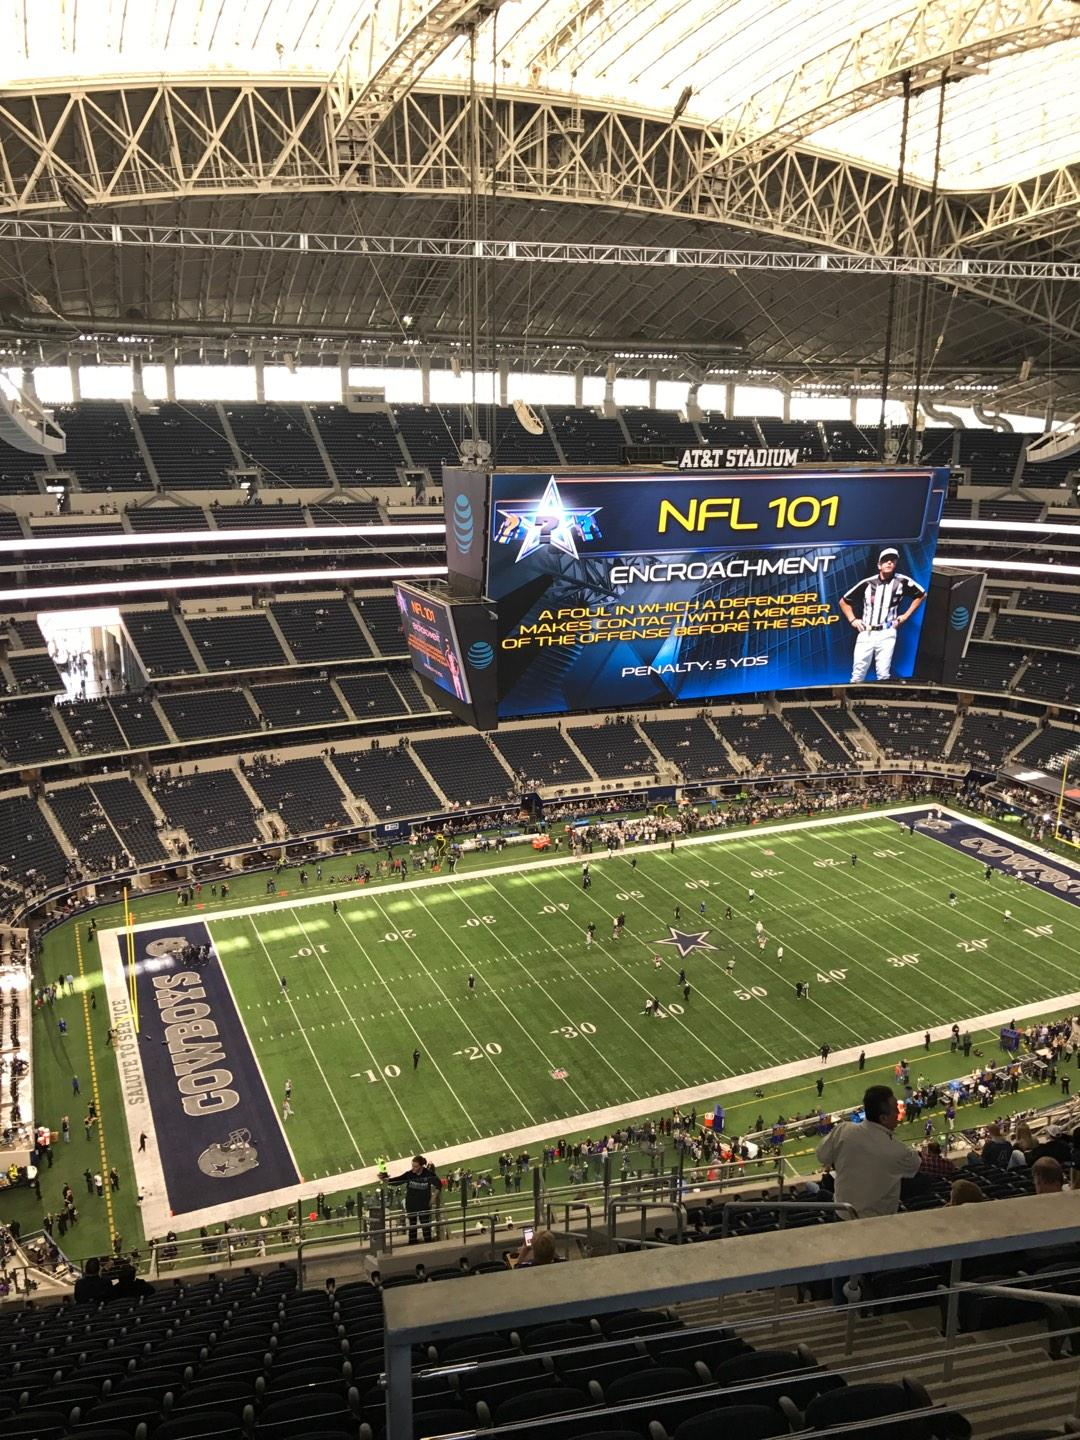 AT&T Stadium Section 447 Row 27 Seat 5